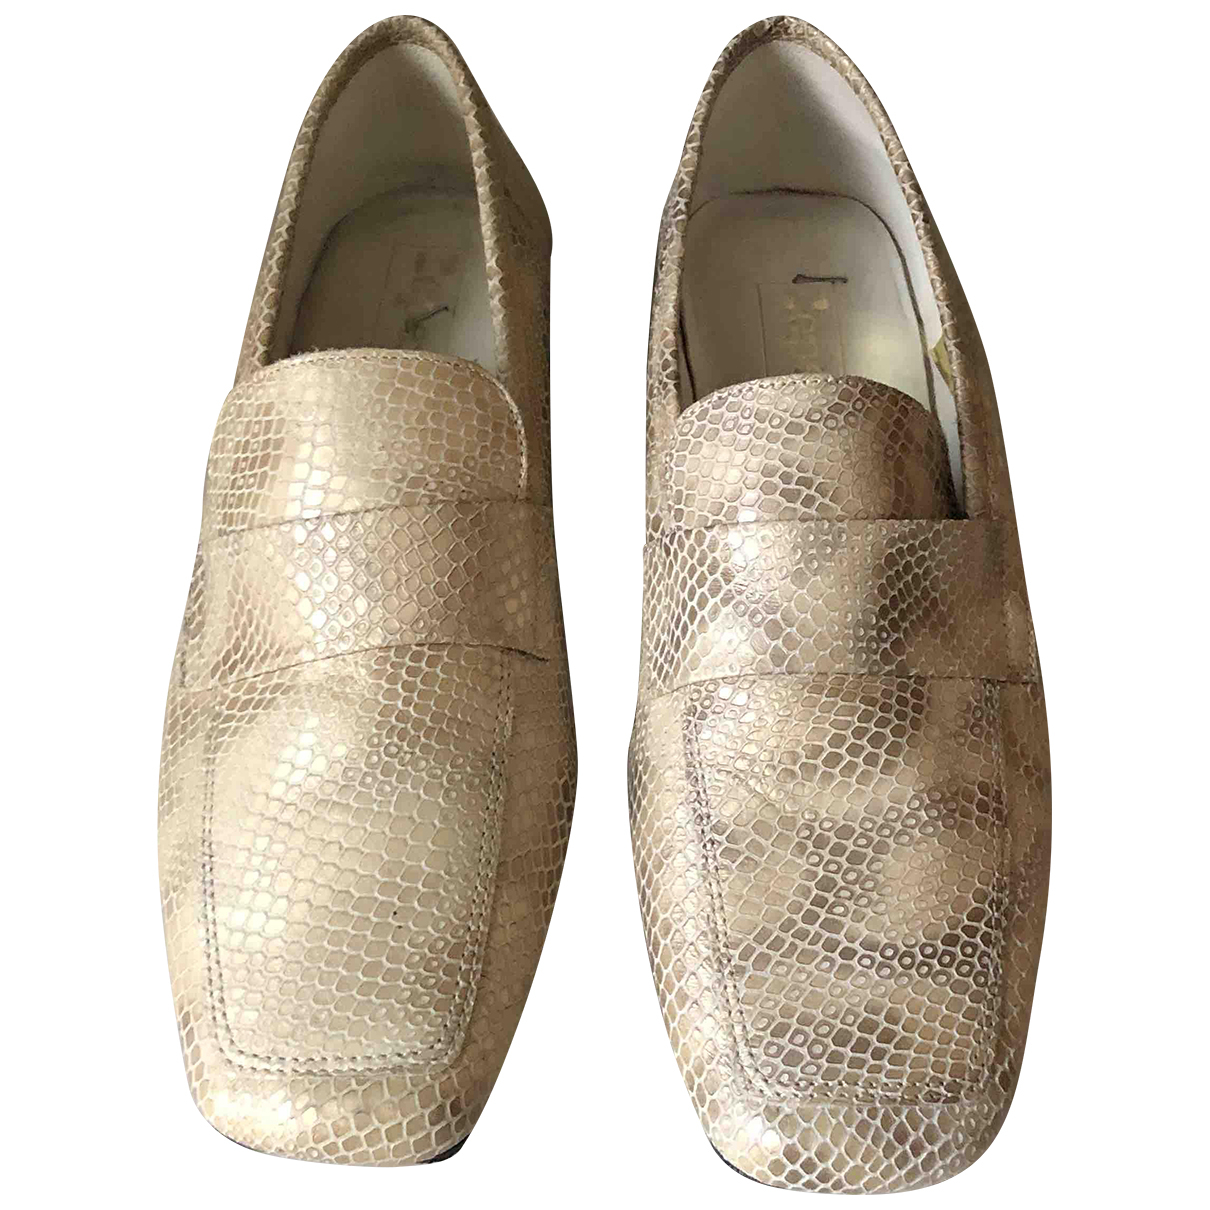 Repetto \N Mokassins in  Beige Python